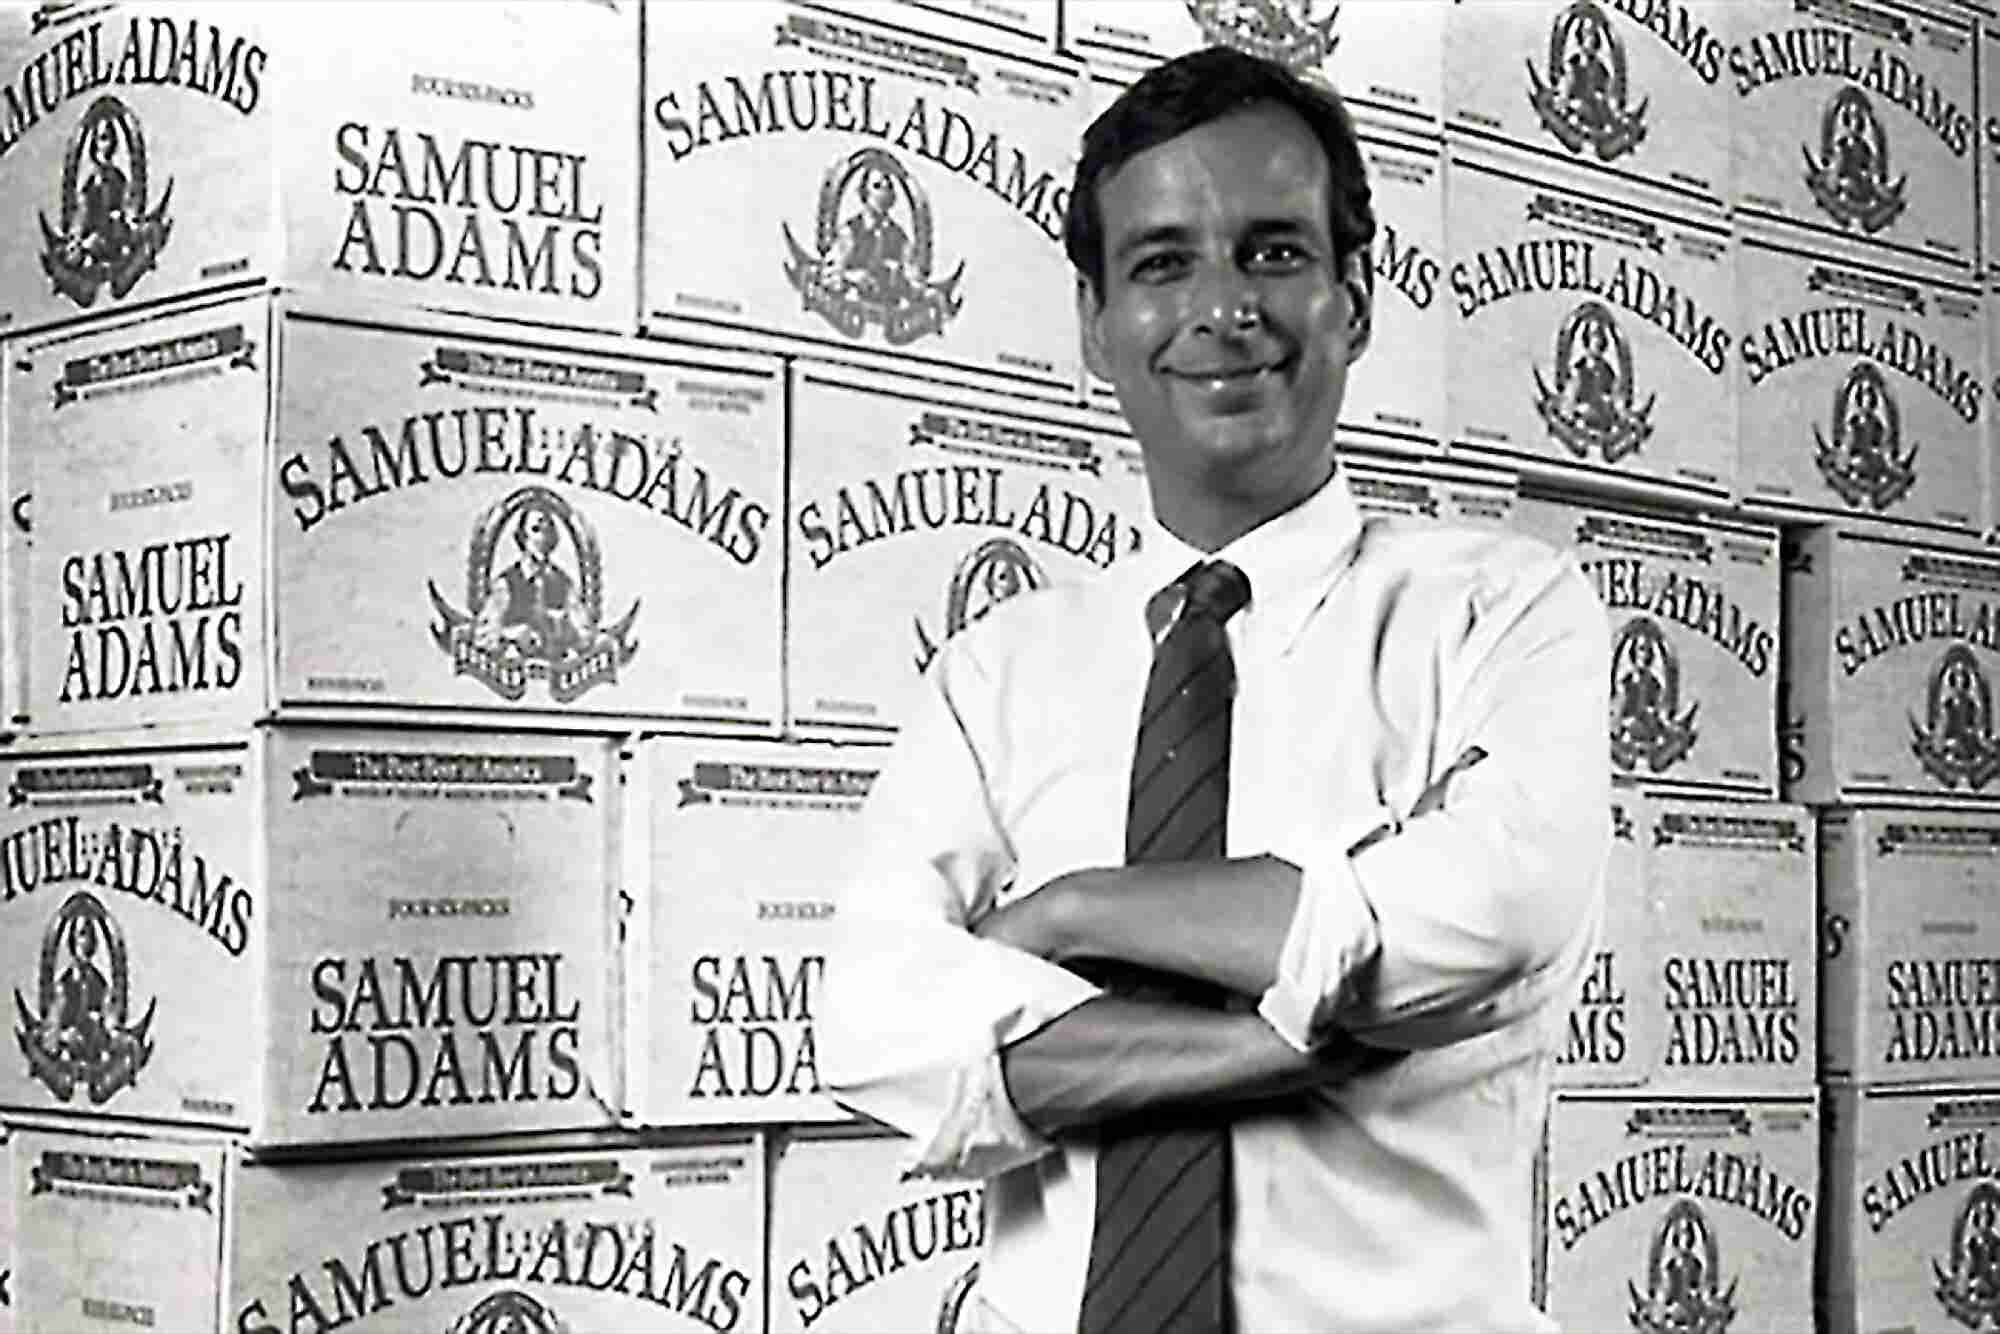 Sam Adams Founder: Waiting for That 'Light Bulb' Moment? Don't.